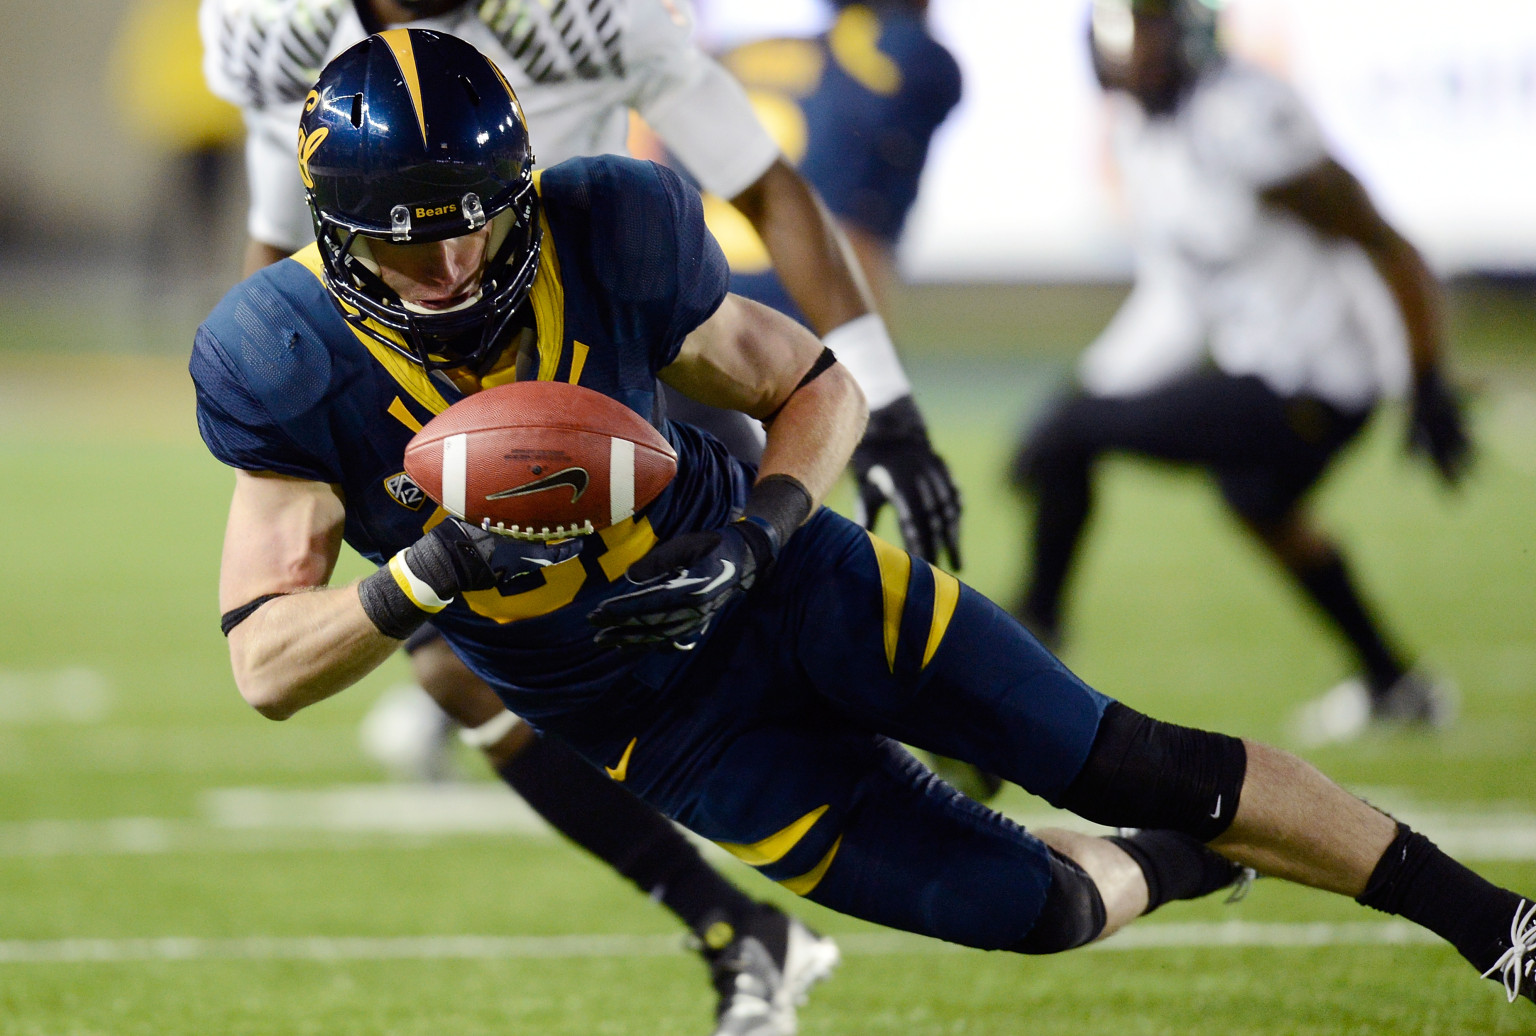 Under Armour signs an $86 million deal with UC Berkeley